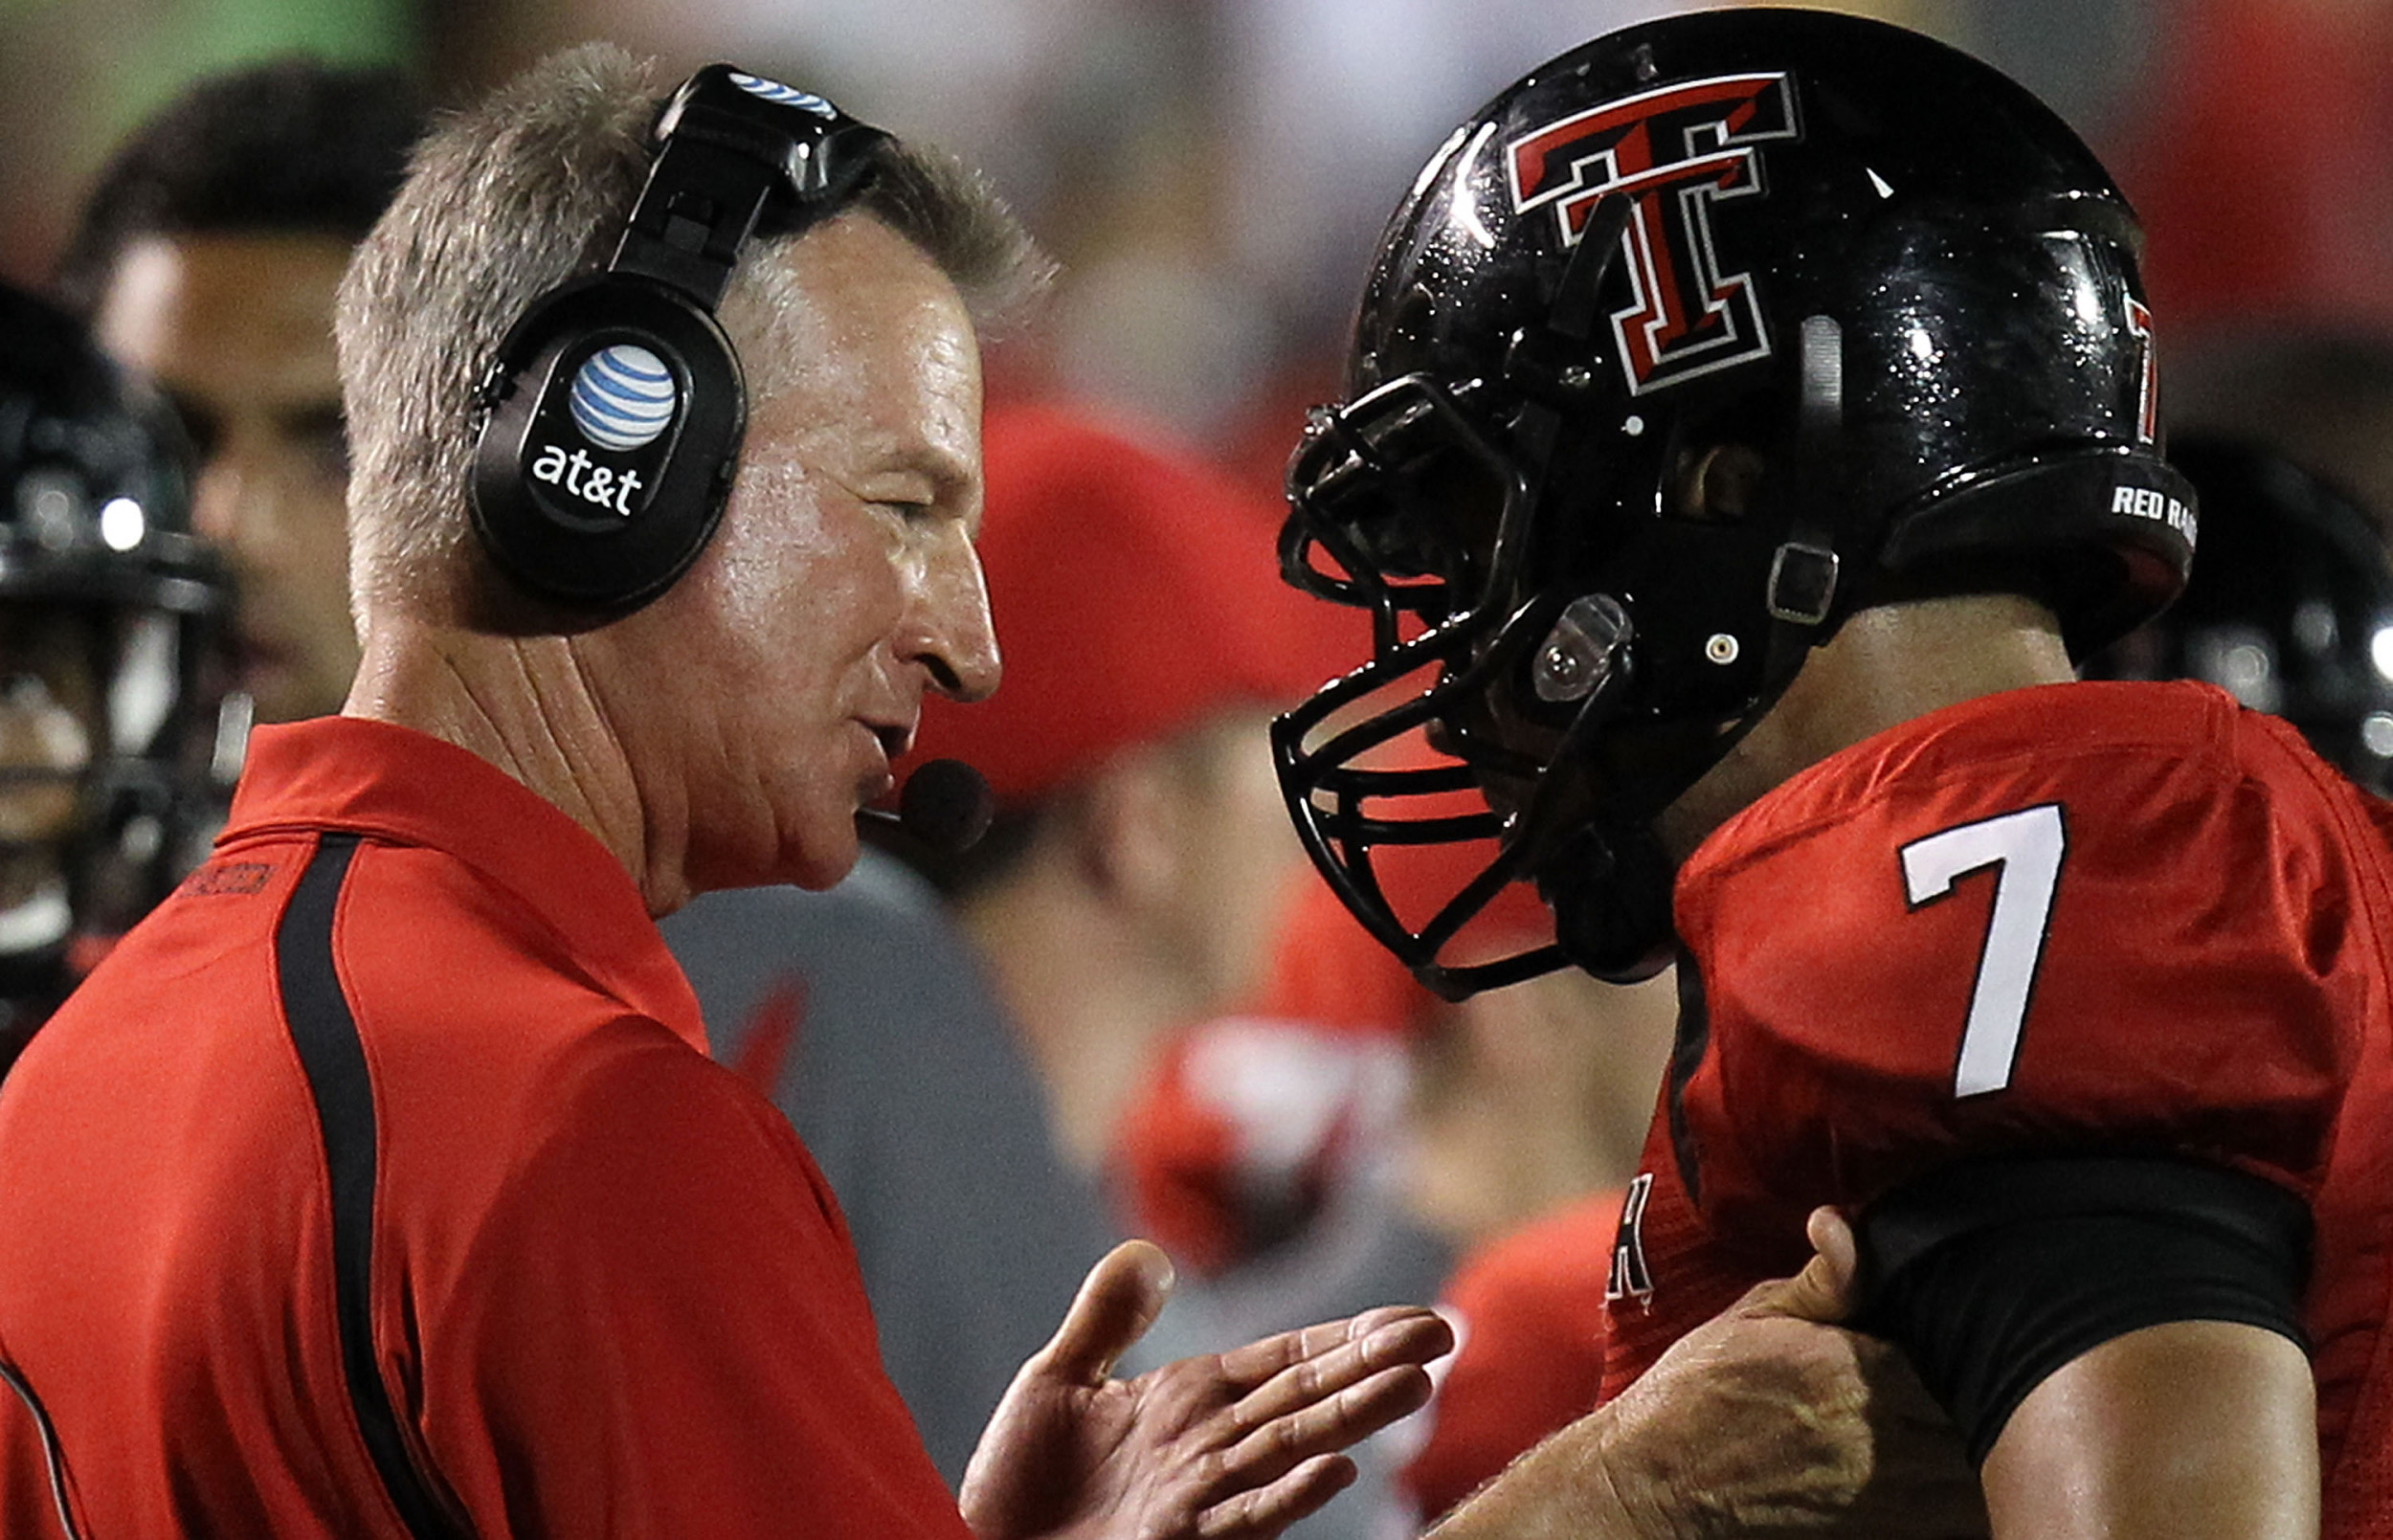 After primary win, video resurfaces of Tommy Tuberville slapping coach